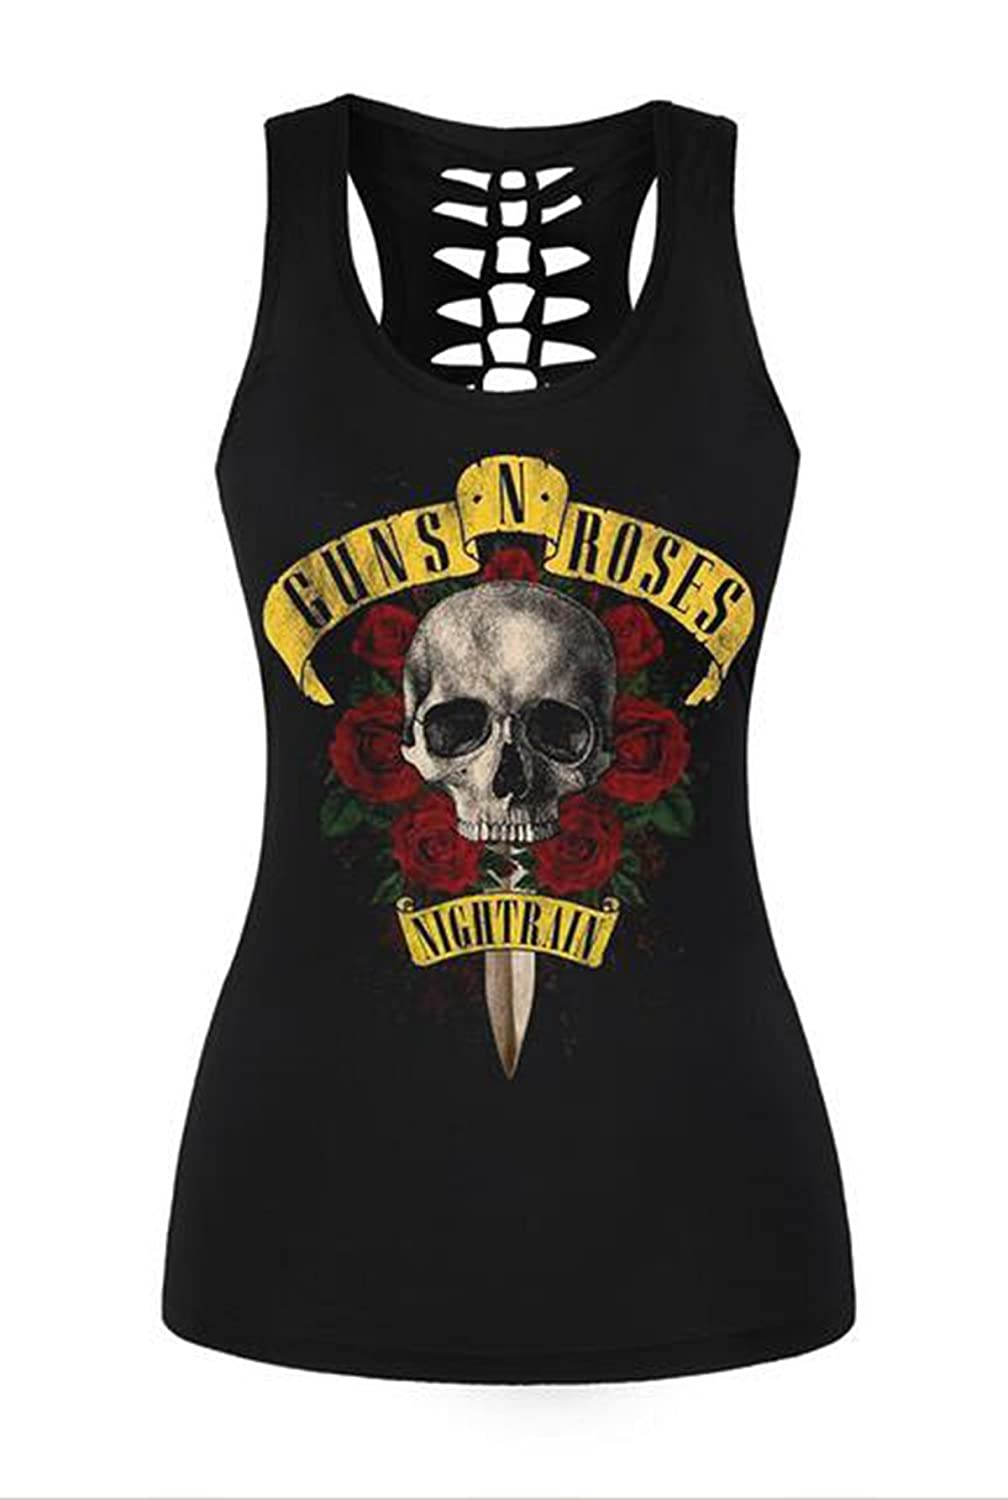 Amazon.com: Piiuiy Yuik Summer Classic Skull 3D Print Tank Top Women O-Neck Sleeveless Vest Black Workout Tops: Clothing